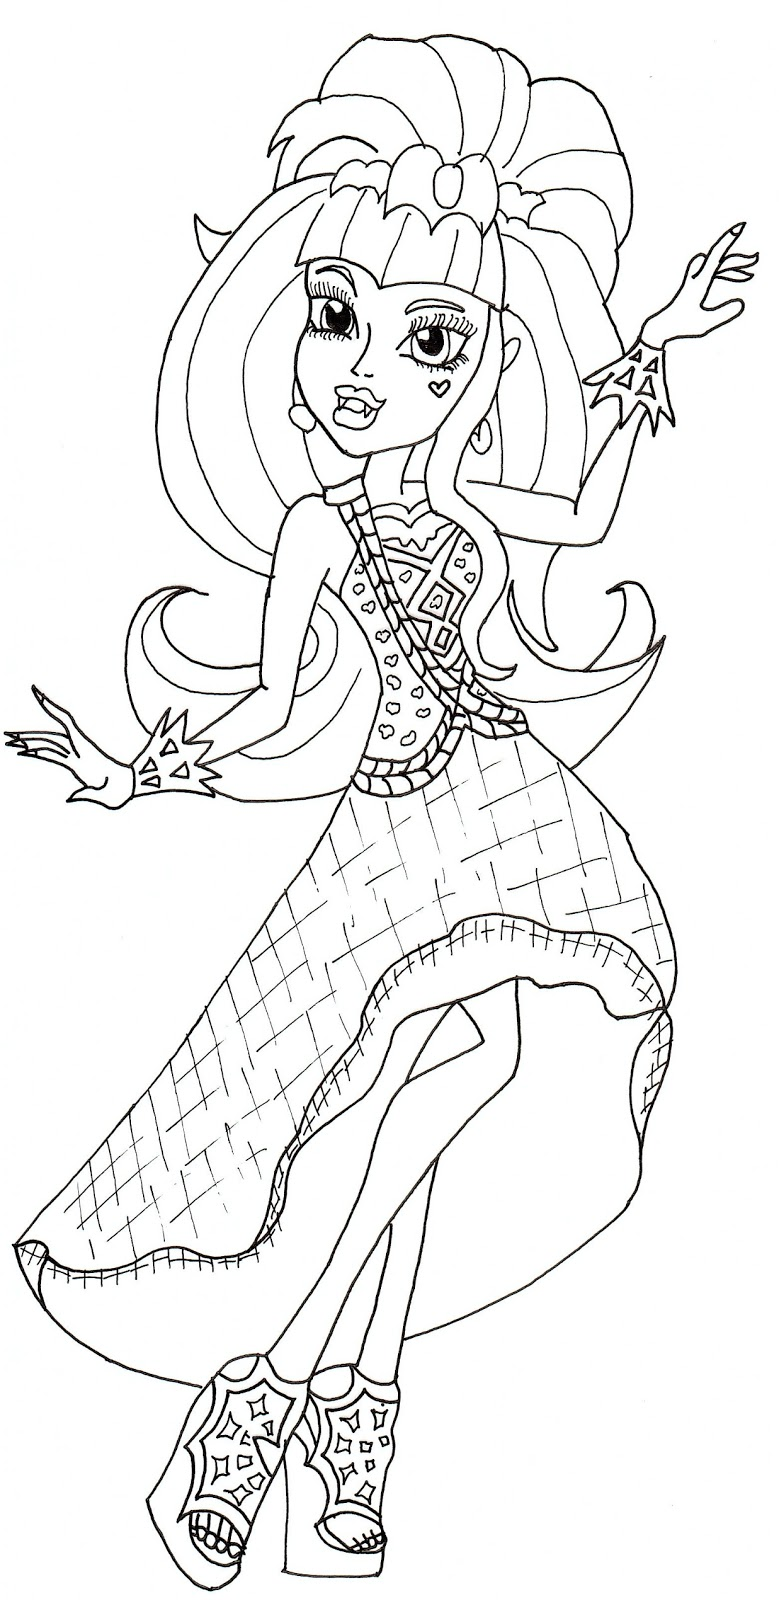 Ghoulia Yelps Monster High Coloring Page | Owl coloring pages ... | 1600x779